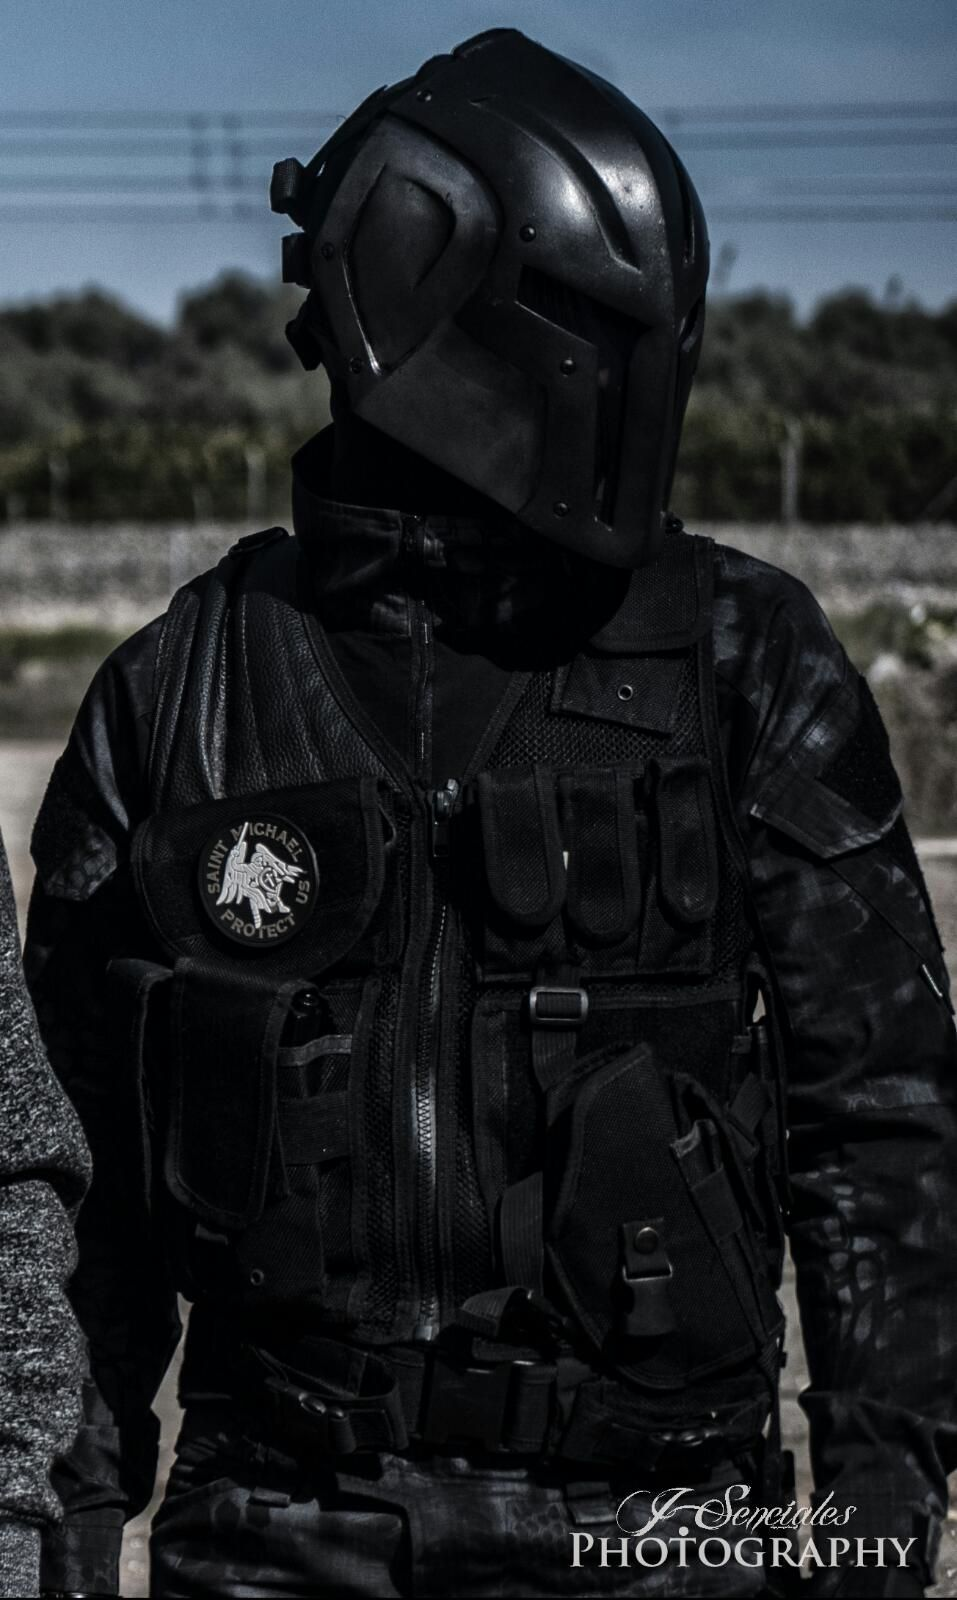 Airsoft Costume With The Dark Spartan Mask